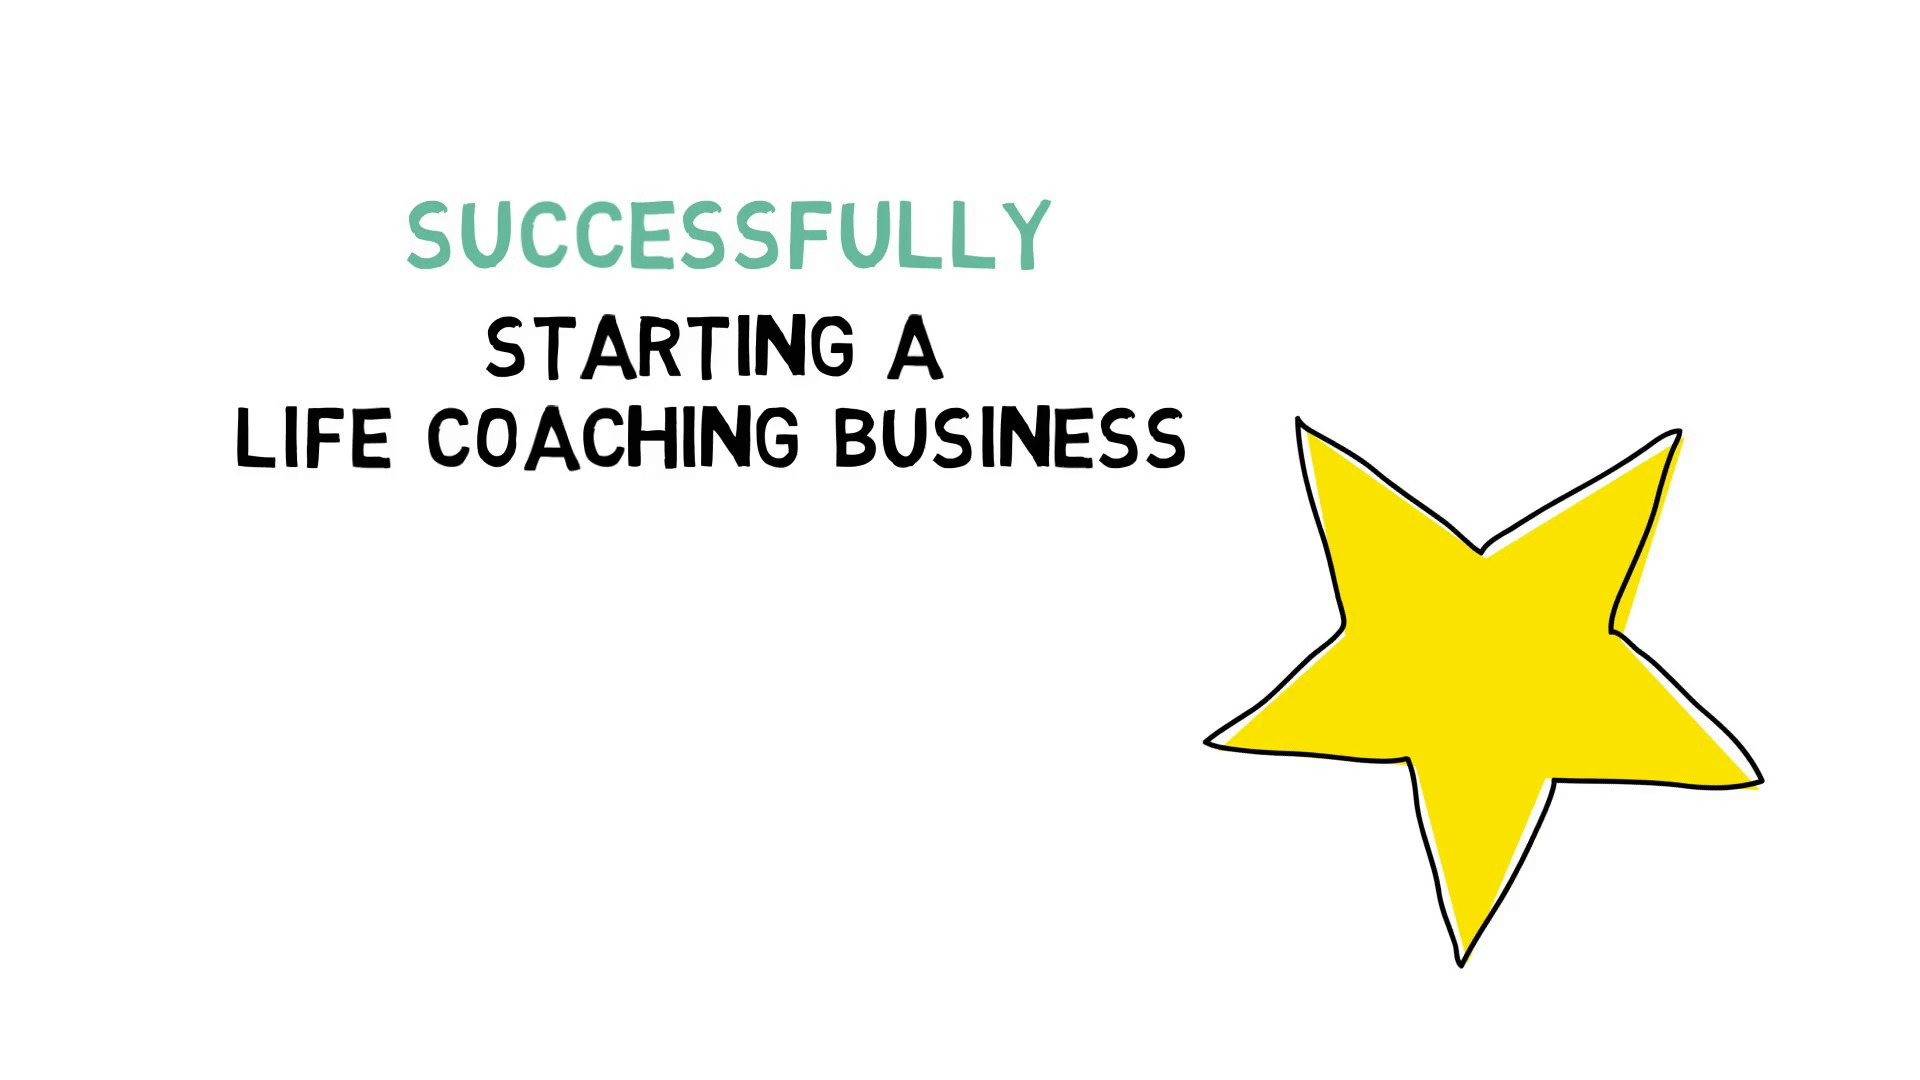 Starting A Life Coaching Business Successfully